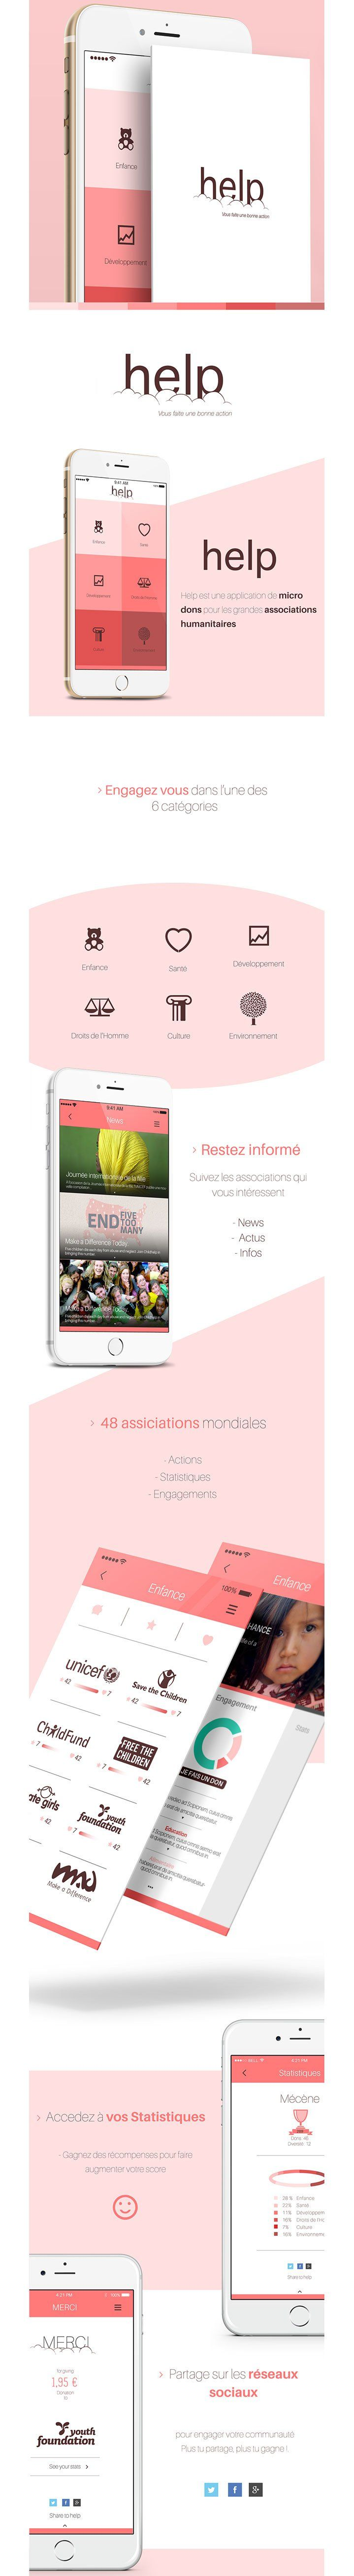 Mobile App / Flat Design app ios iphone smartphone